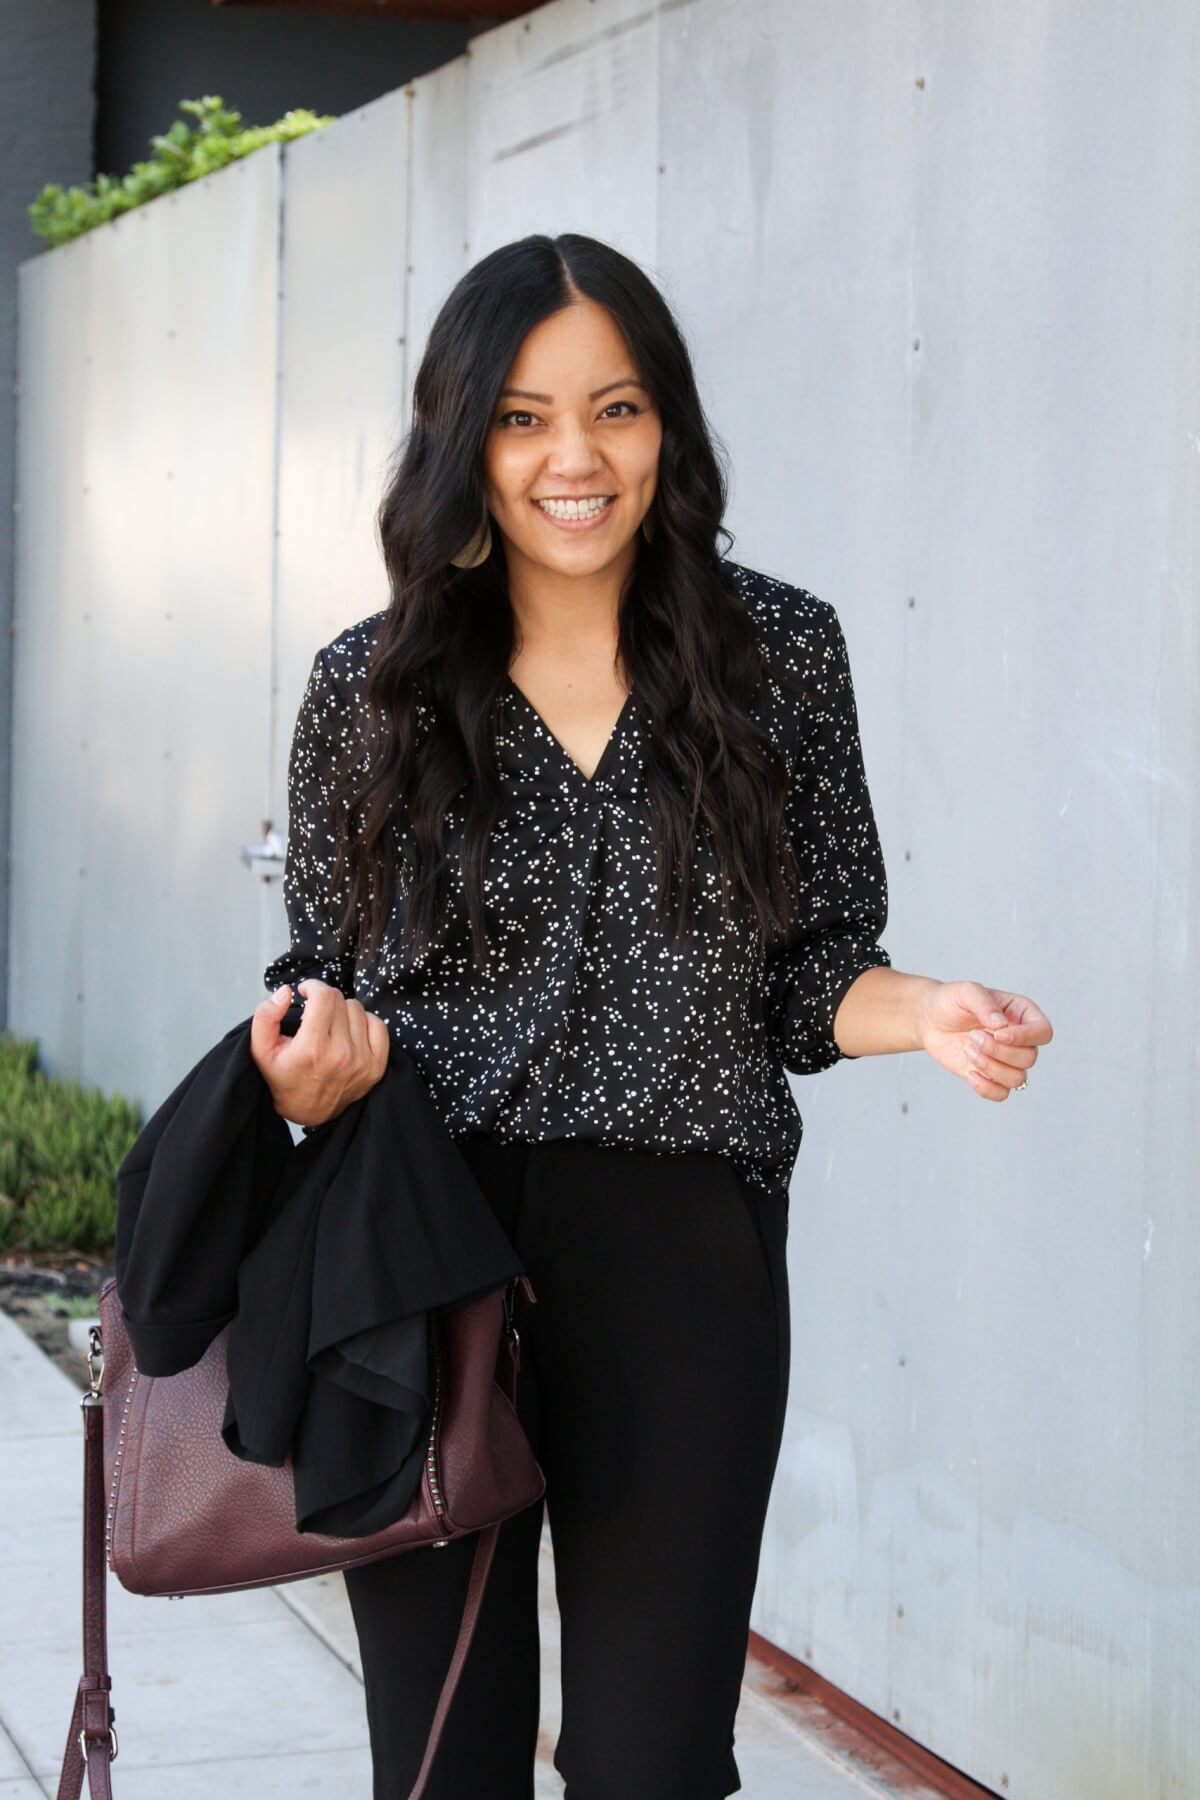 Business Casual Outfit: black blazer + black printed top + black ankle pants + metallic leather earrings + maroon bag